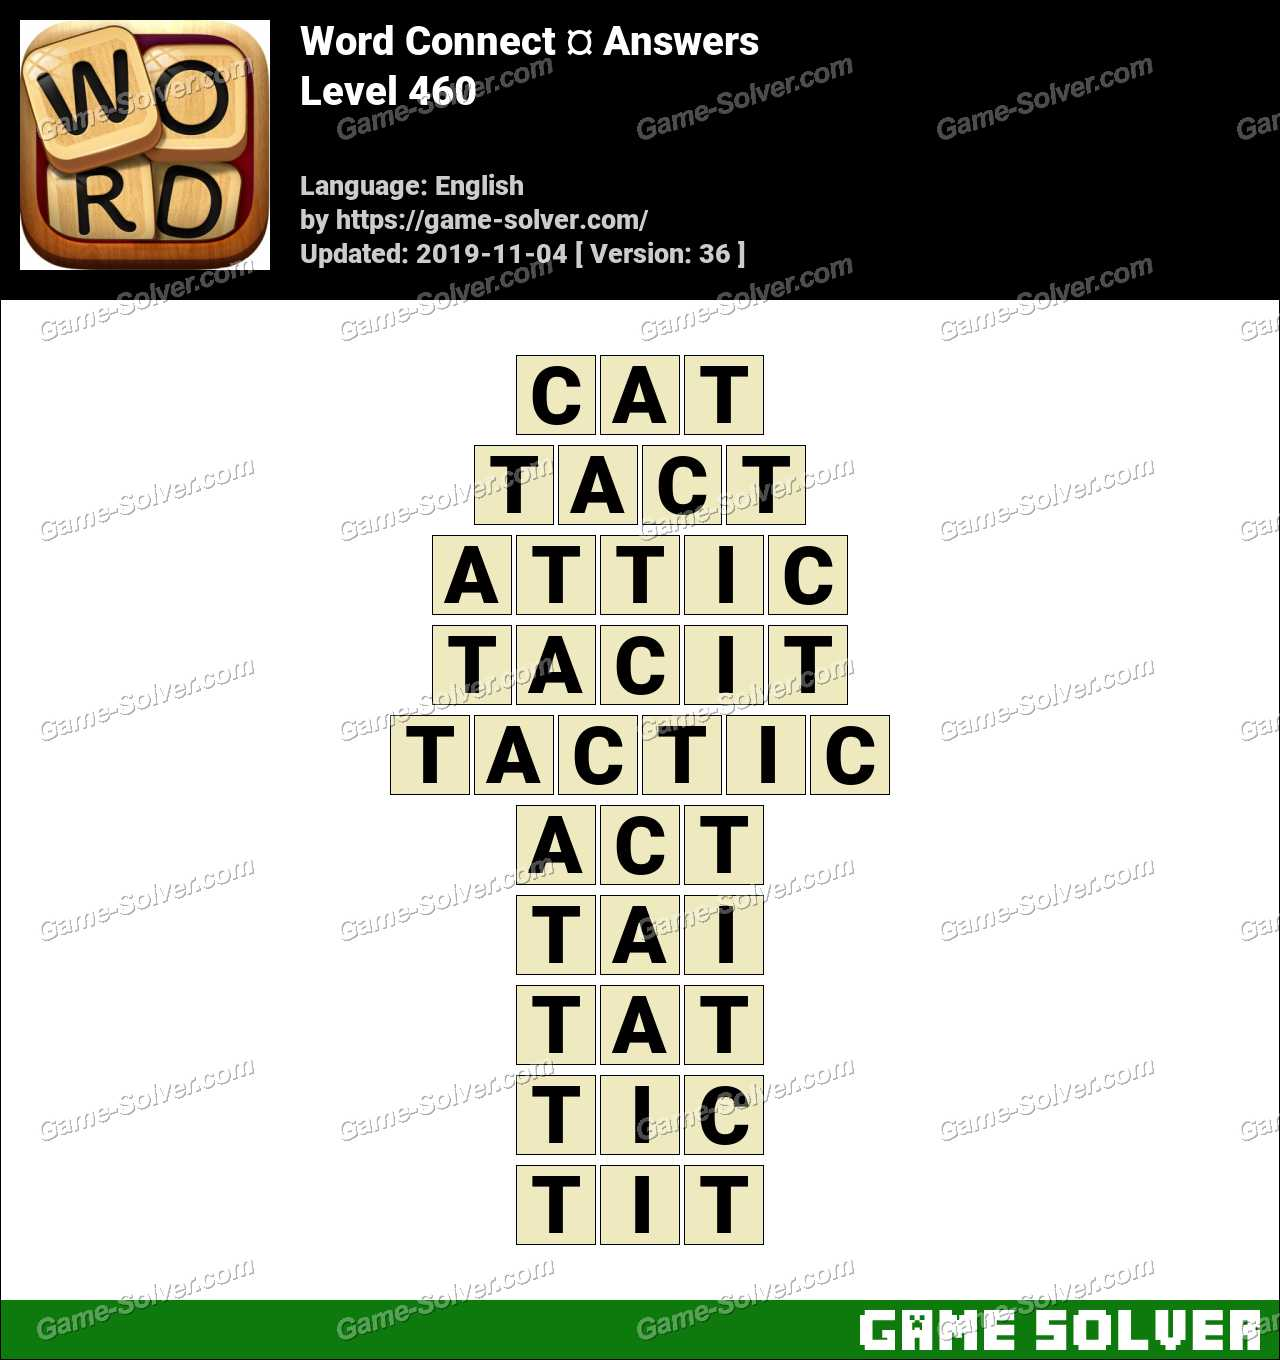 Word Connect Level 460 Answers